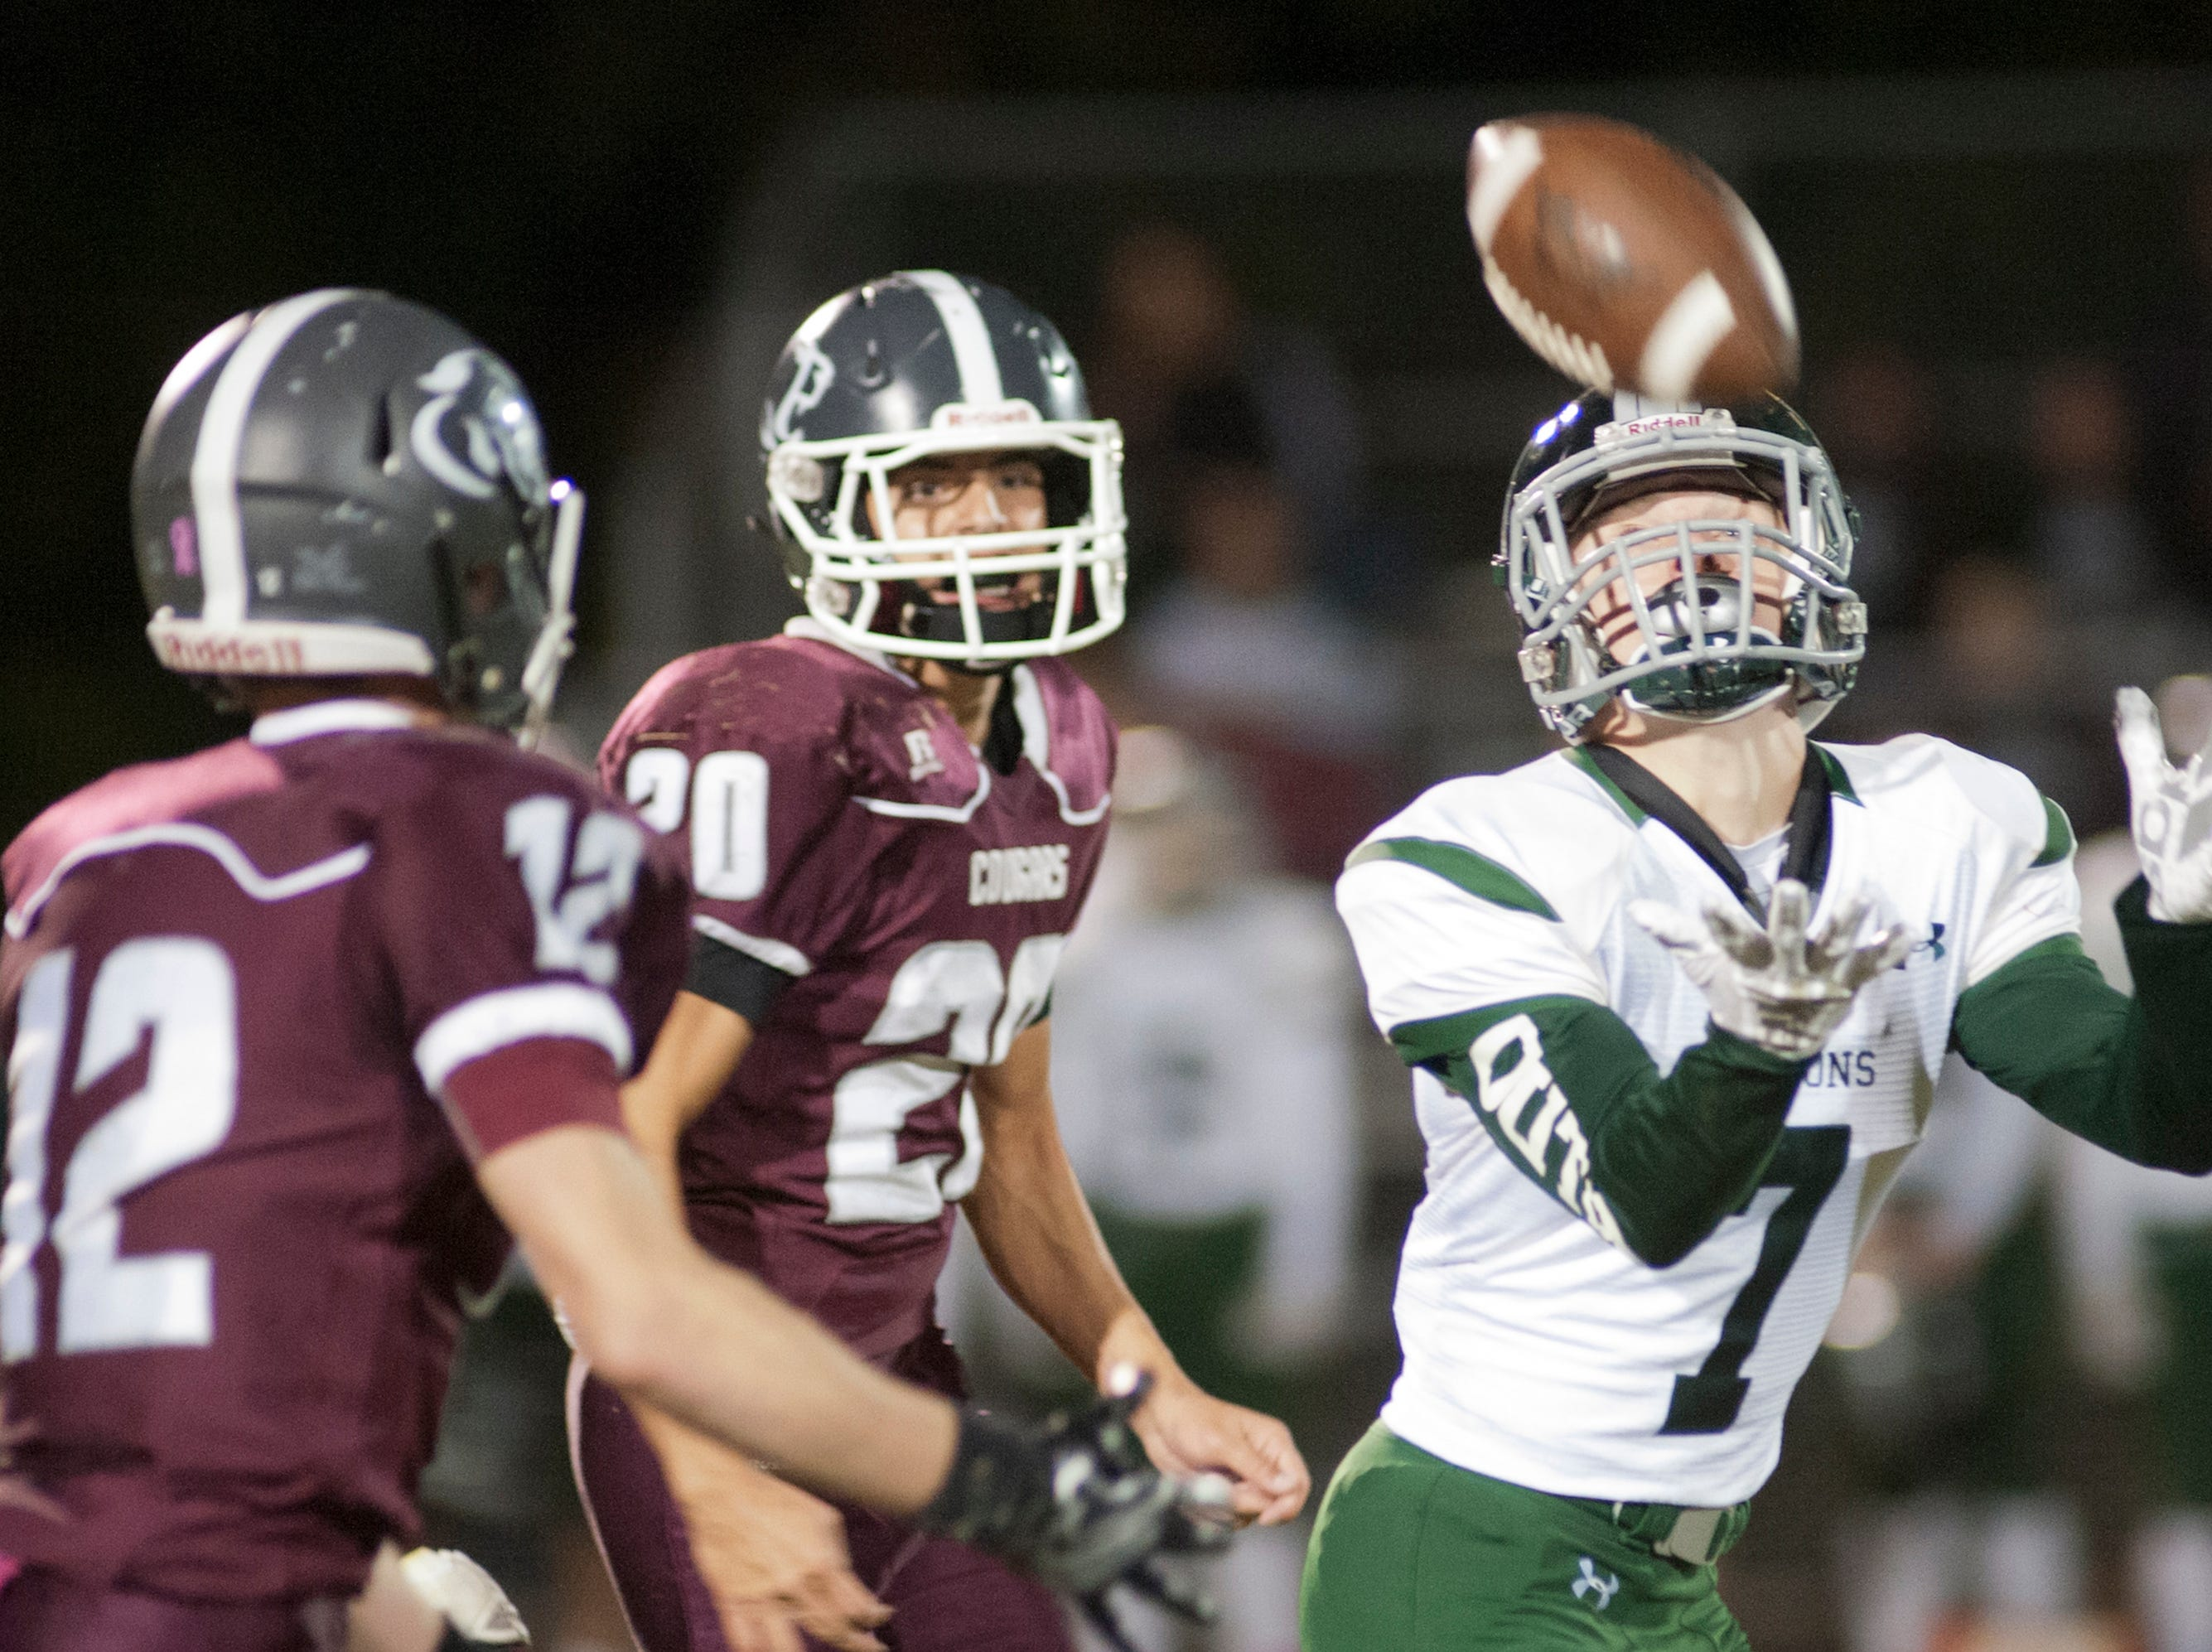 South Oldham wide receiver Ethan Bednarczyk beats Bullitt Central safety Phillip Hughes, left, and Bullitt Central cornerback Jacob Dillman, center, to the ball. Oct. 12, 2018